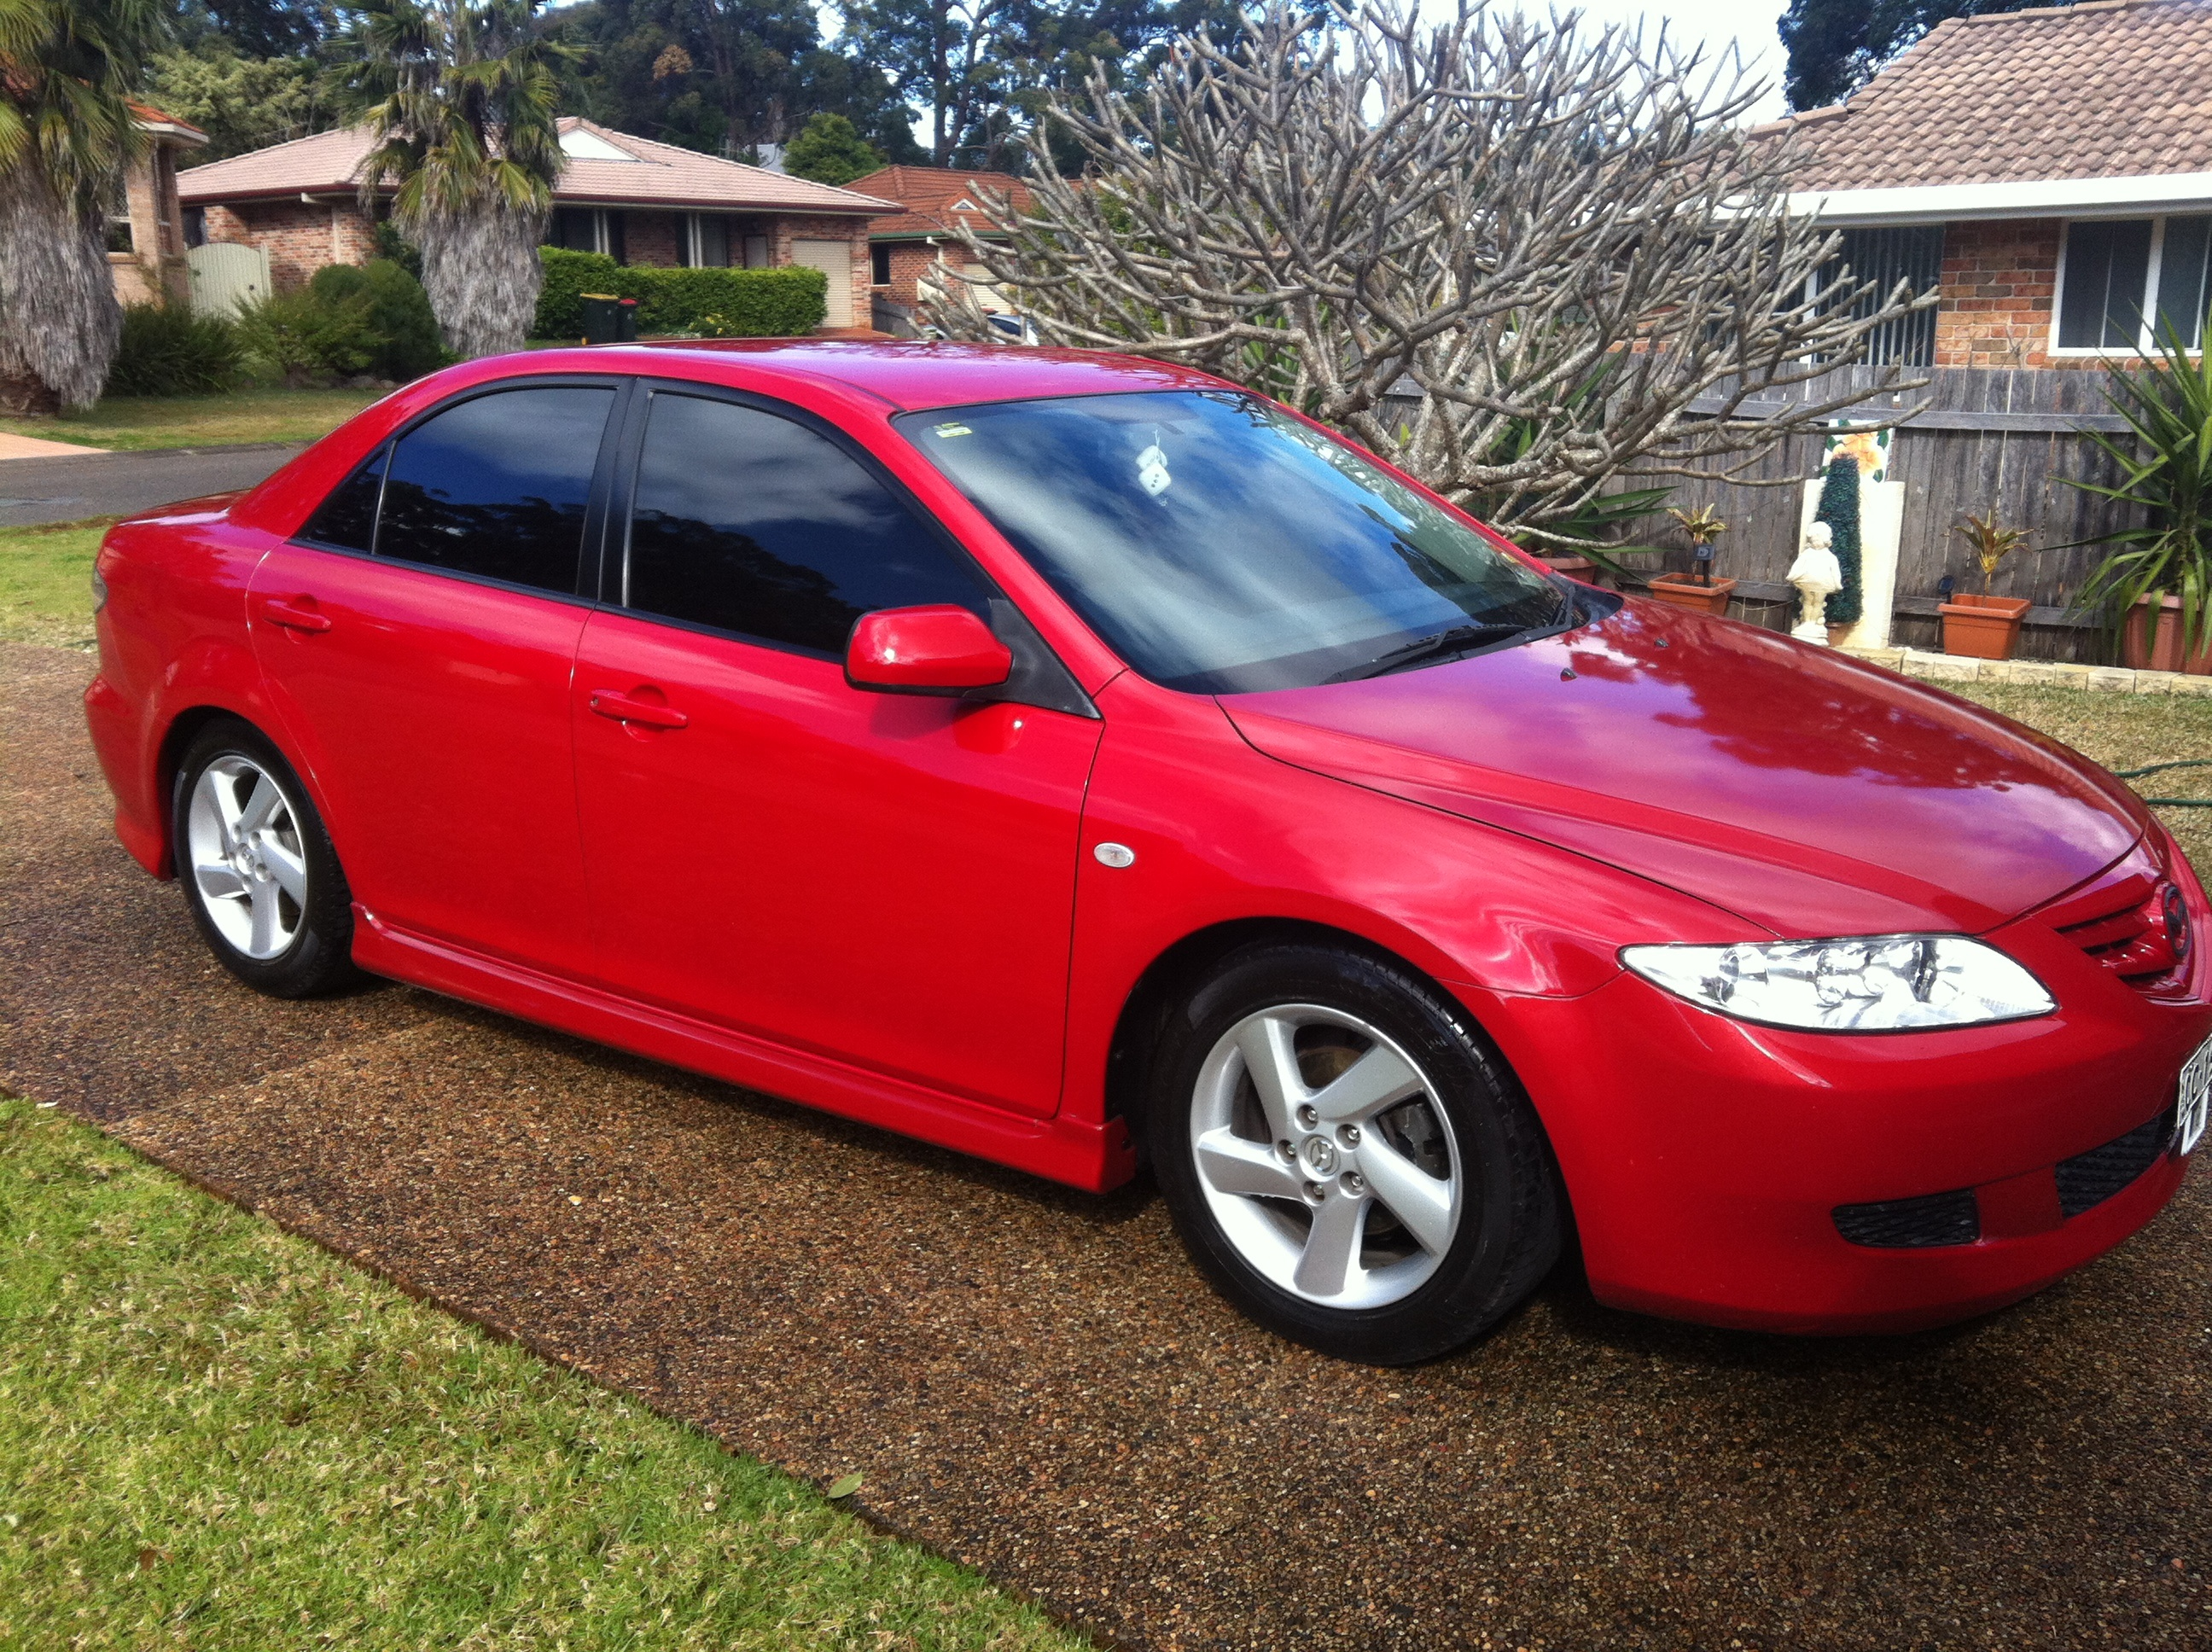 2004 mazda 6 car sales nsw mid north coast 2281822. Black Bedroom Furniture Sets. Home Design Ideas